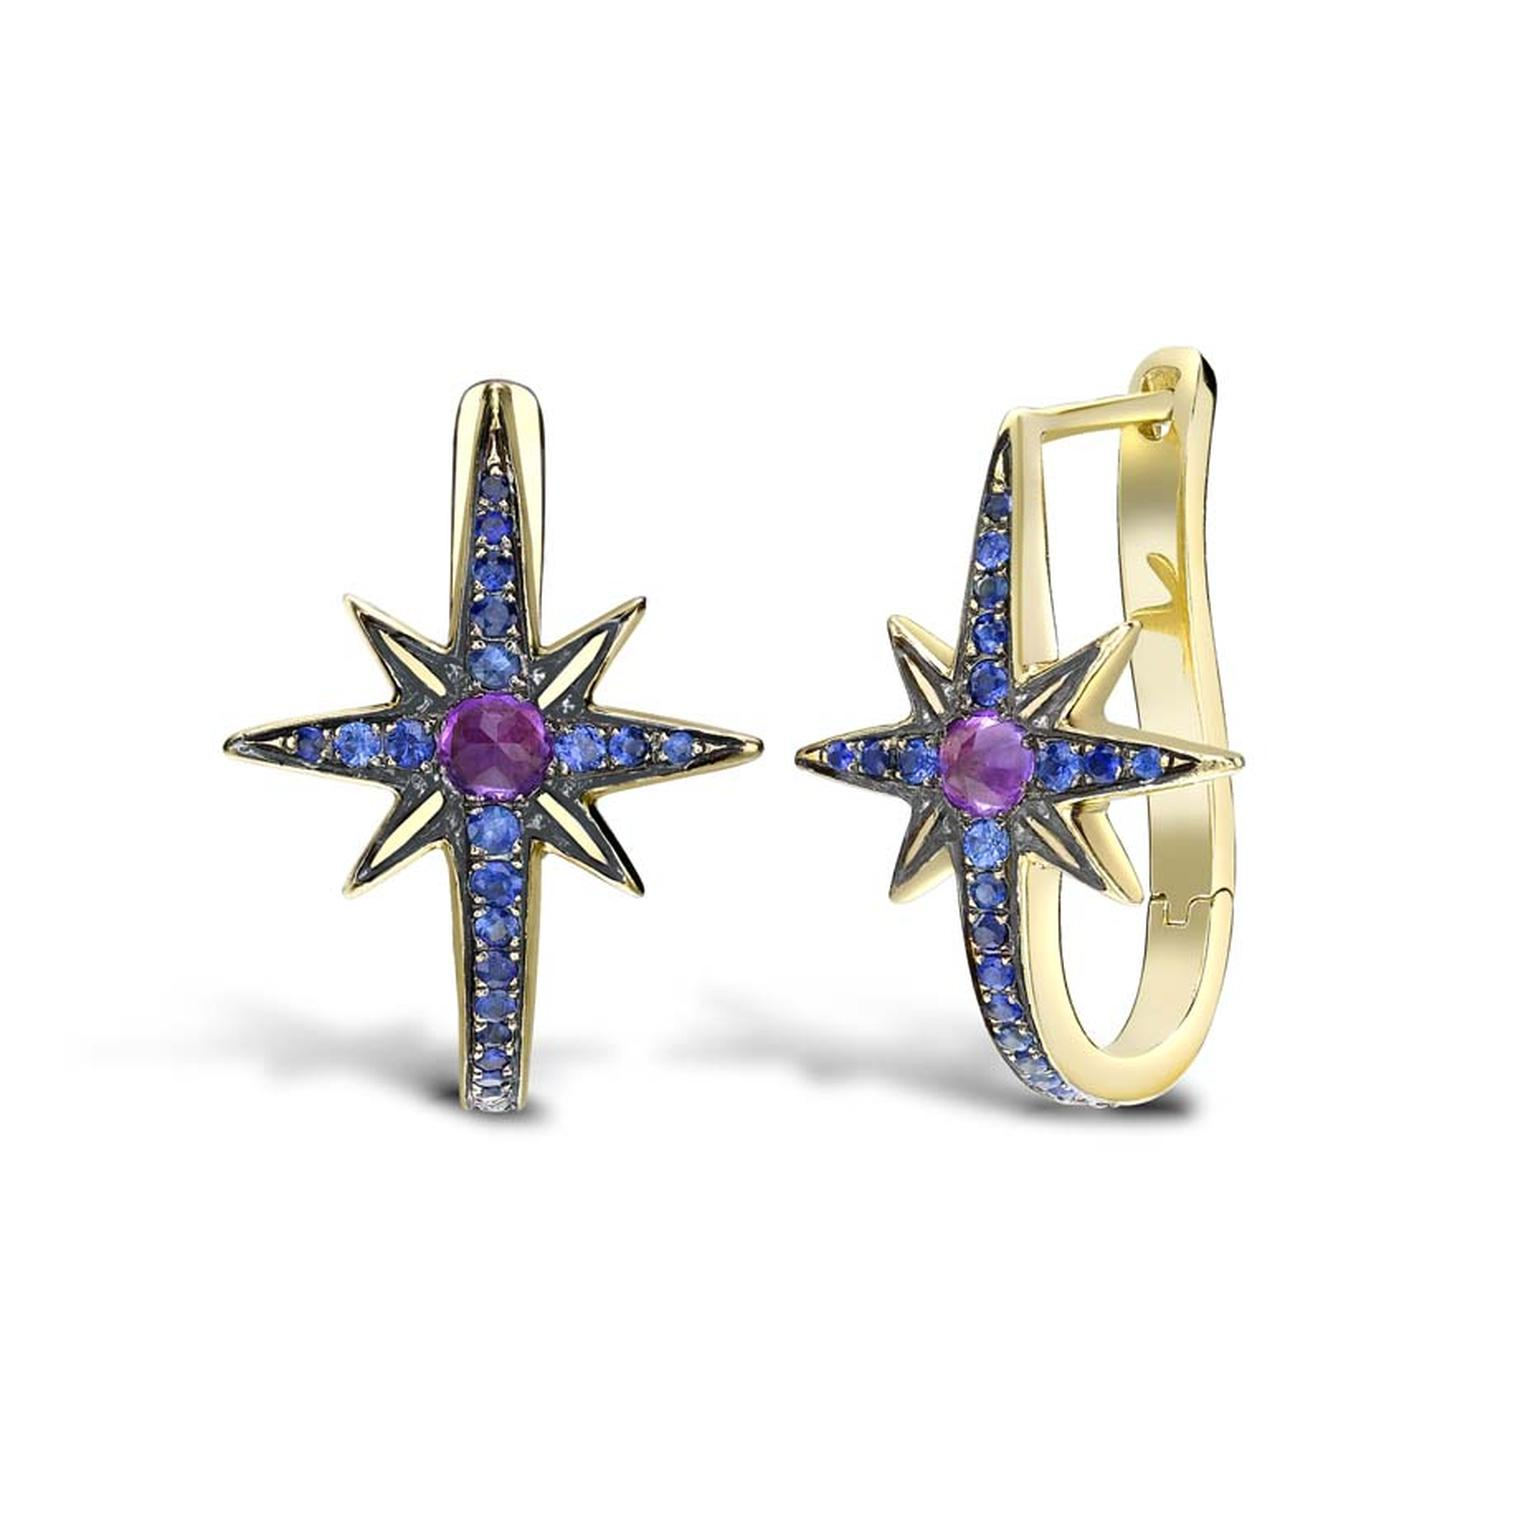 Venyx Star sapphire and amethyst earrings in yellow gold, from the new Theiya collection.